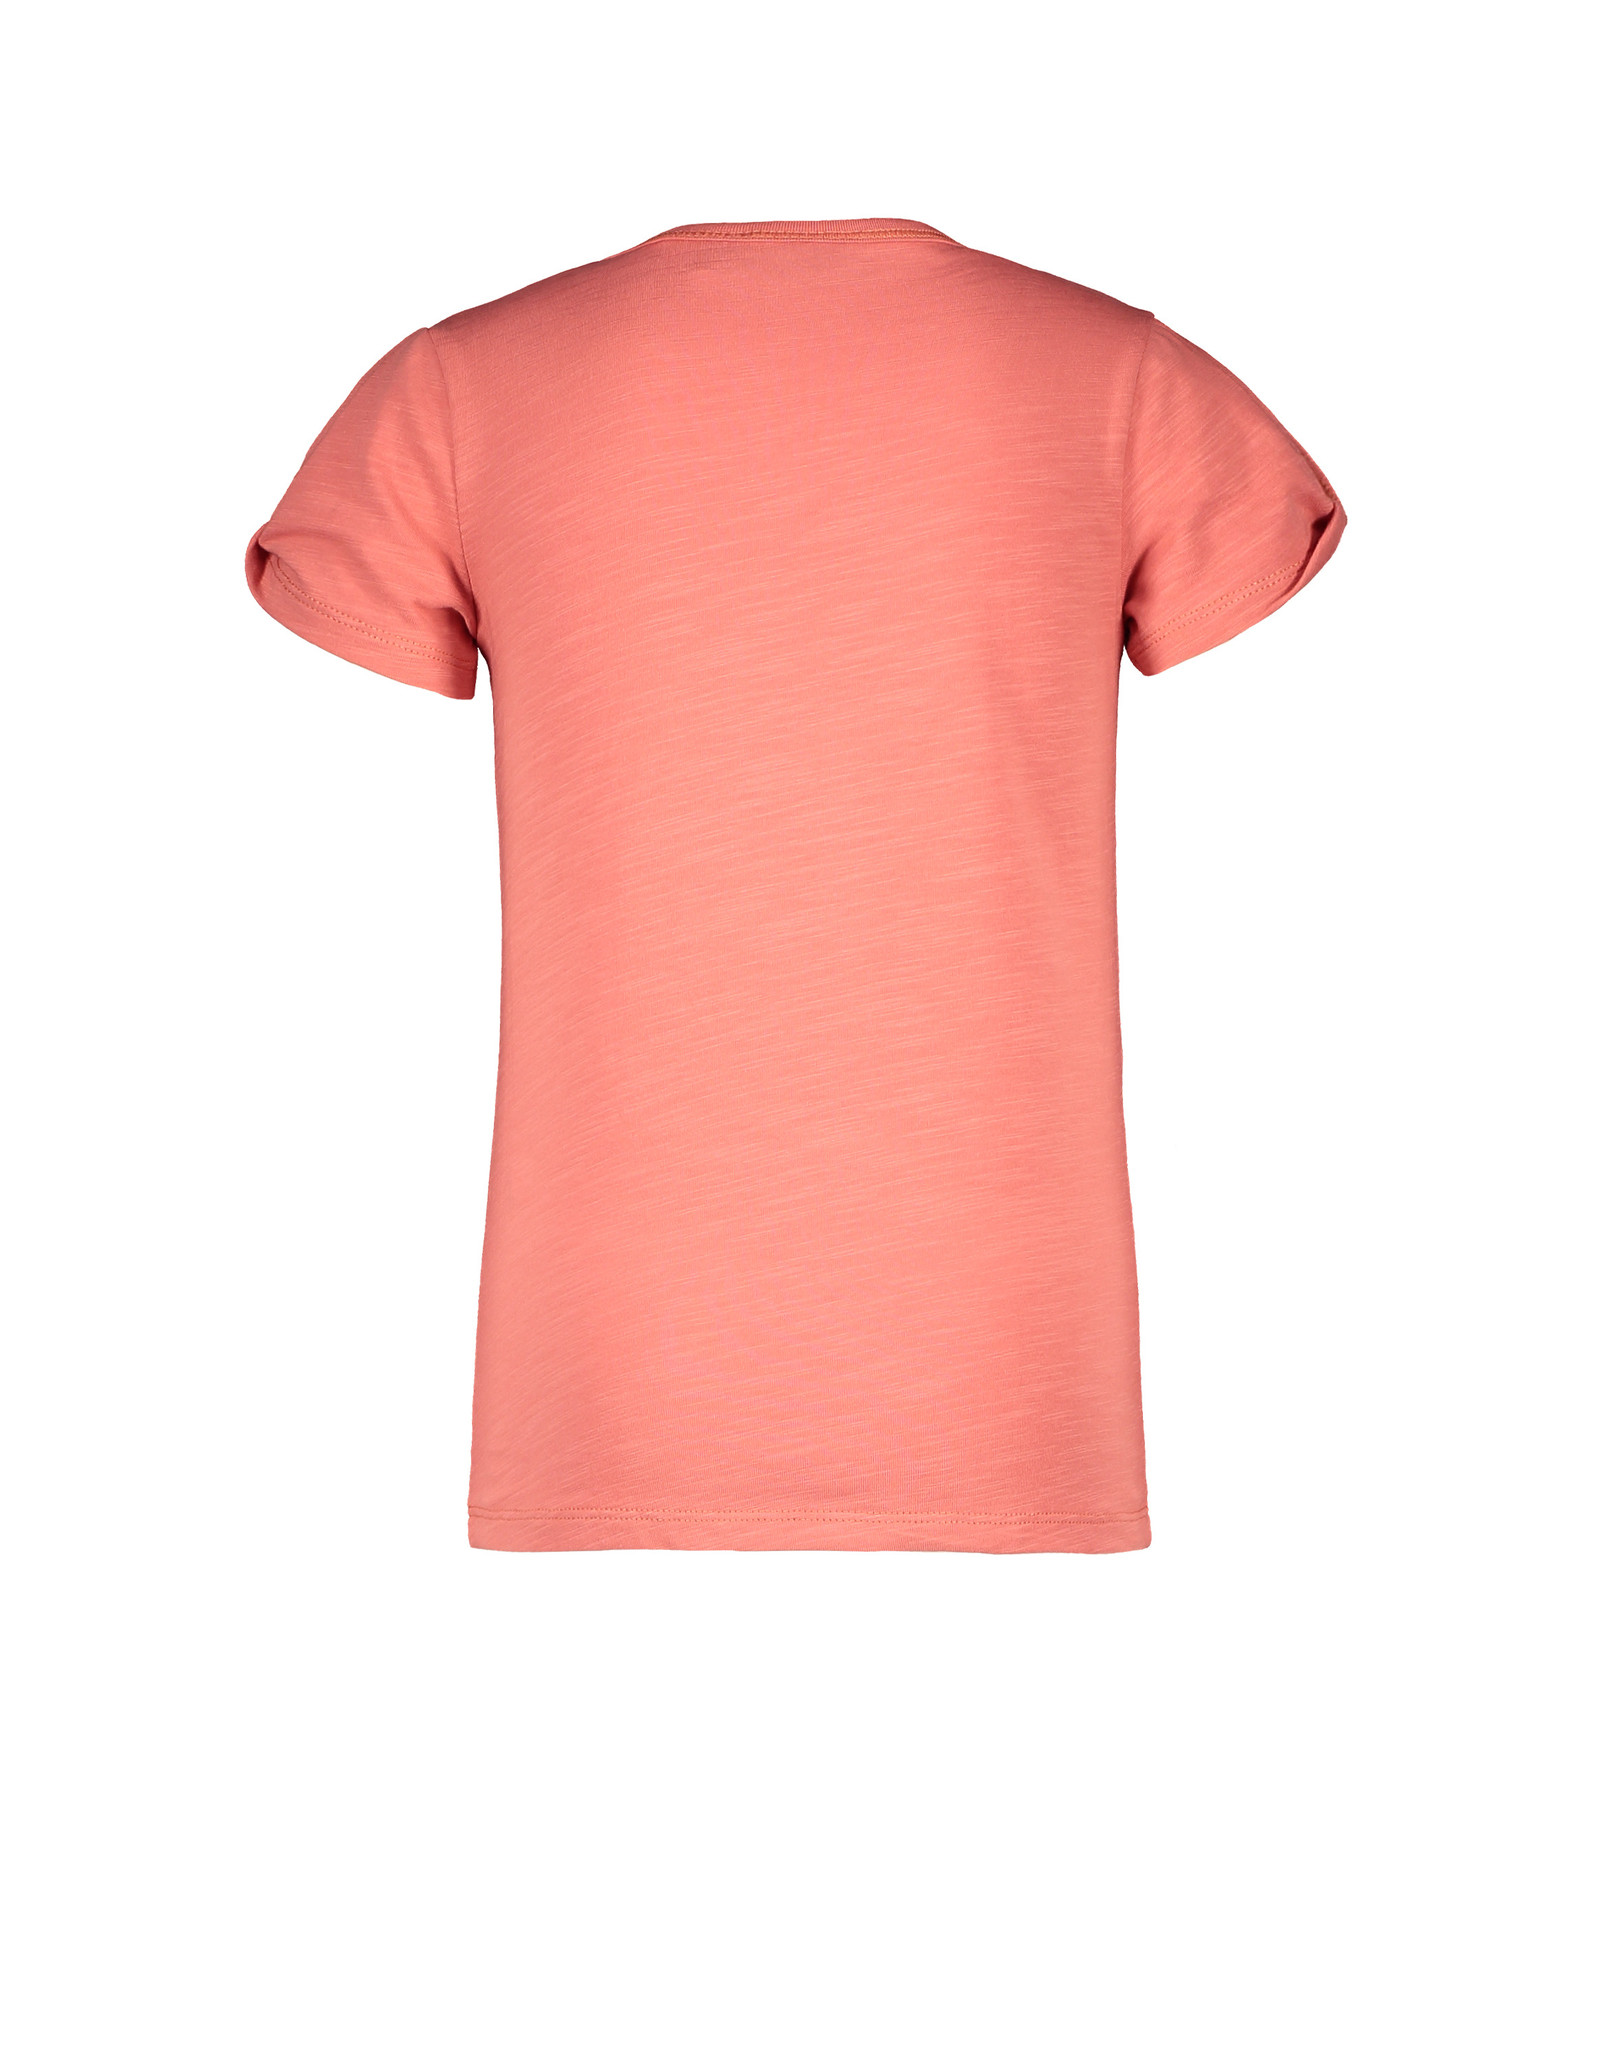 Like Flo girls tee open shoulder roll divers Blush